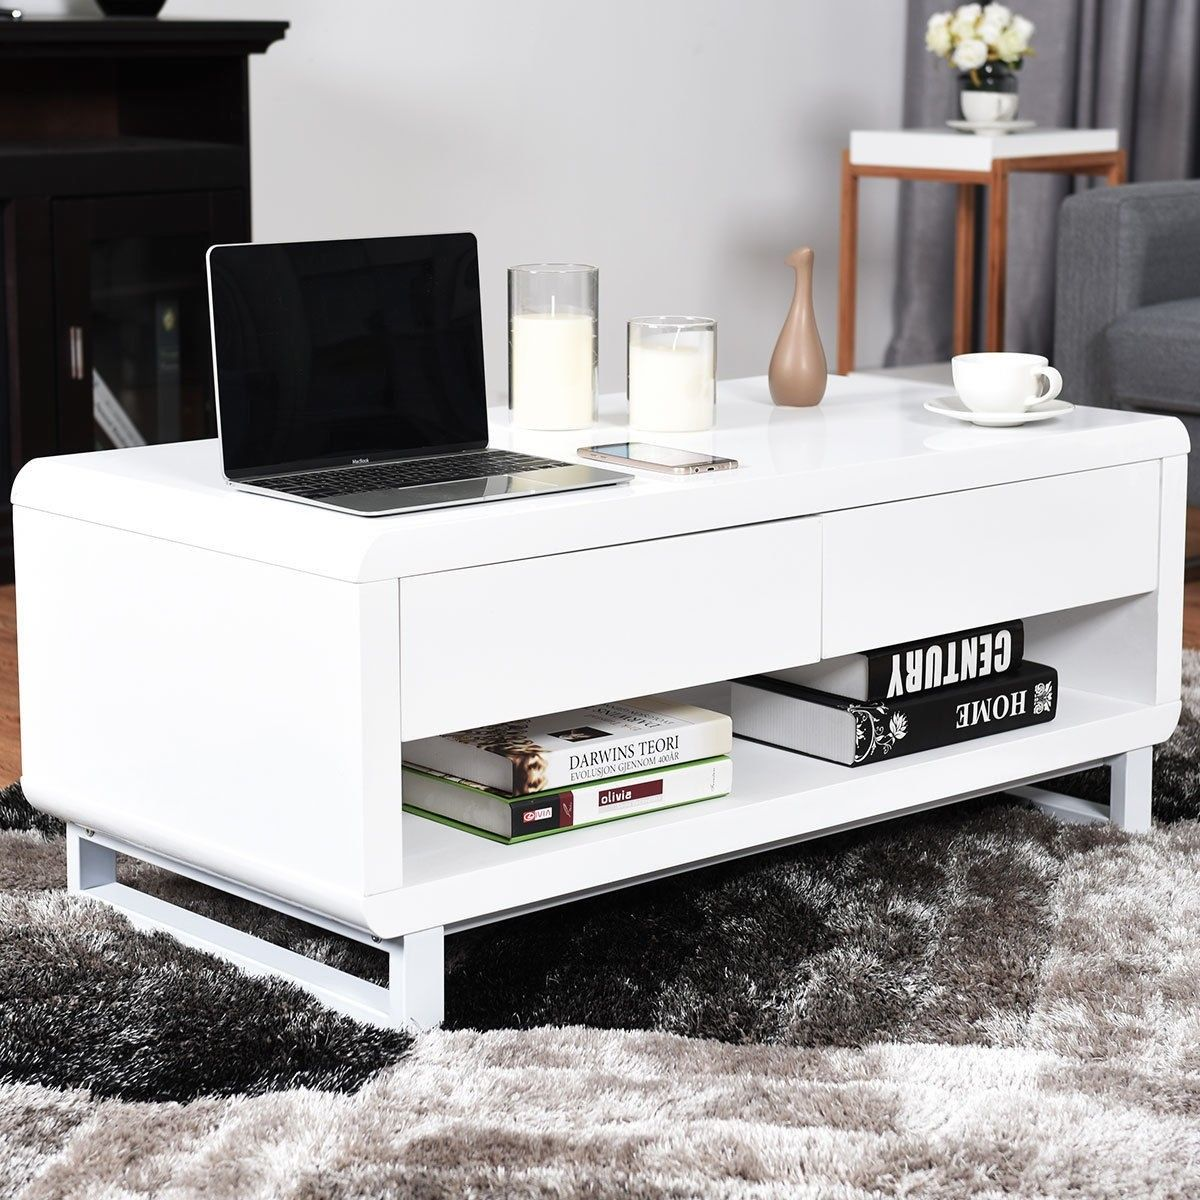 Bluetooth Speakers Drawer Led Light Modern Coffee Table Modern Coffee Tables Contemporary Coffee Table Coffee Table [ 1200 x 1200 Pixel ]